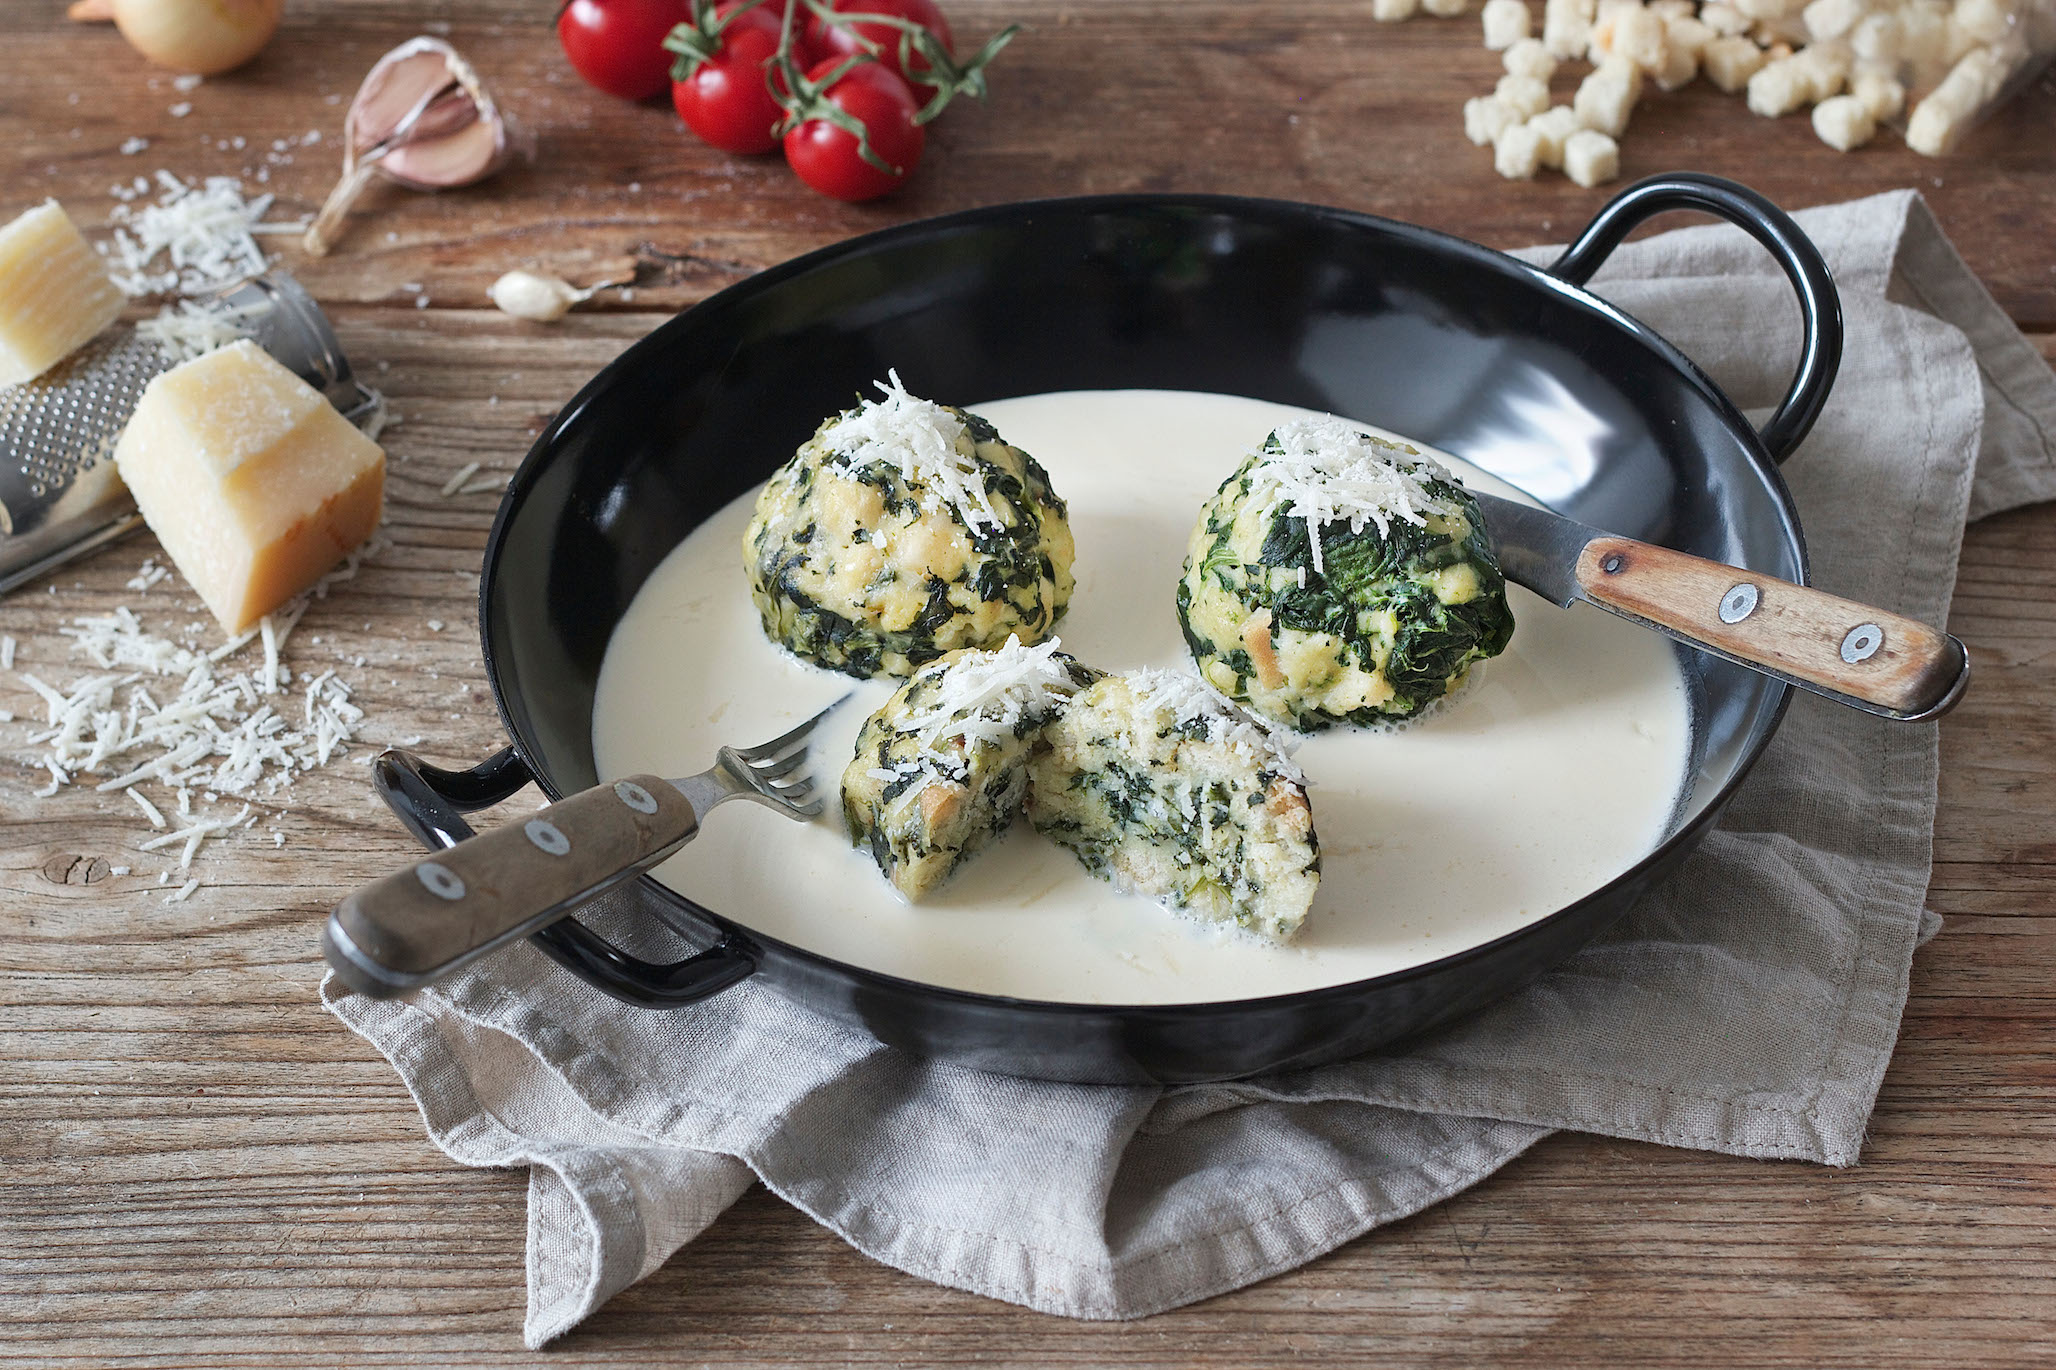 Spinach dumpling with cheese sauce